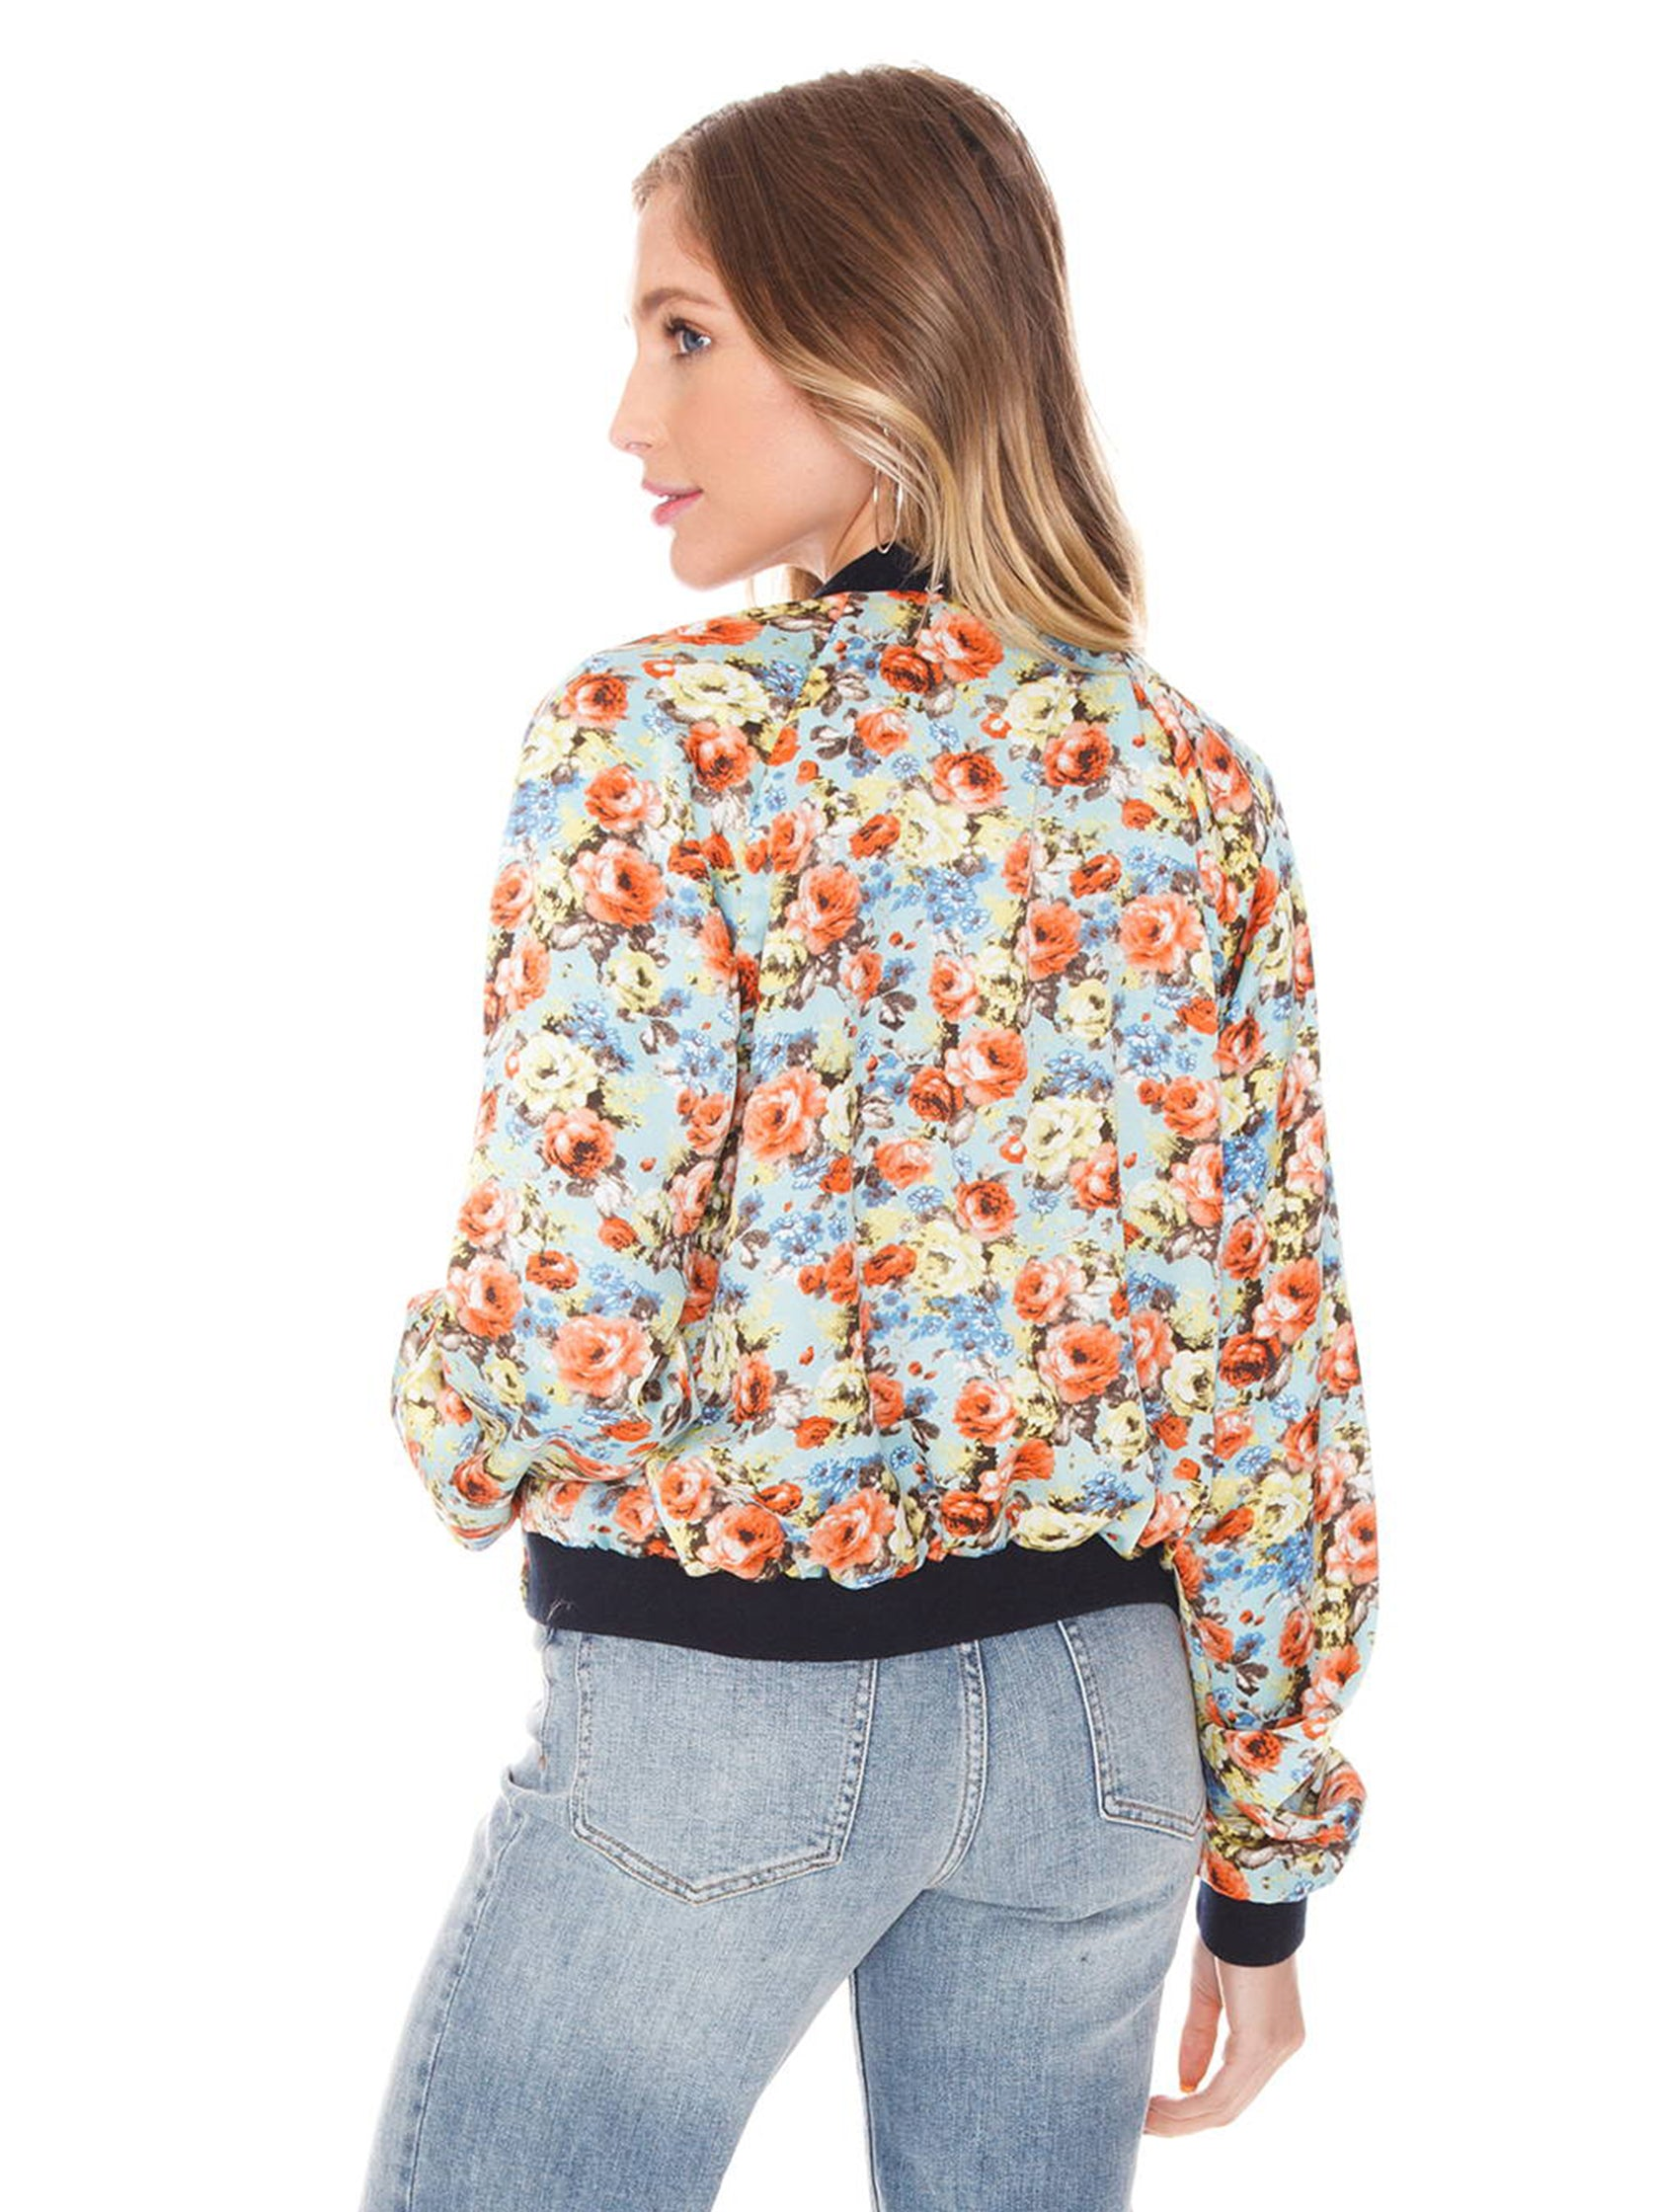 Women outfit in a jacket rental from FLETCH called Blue Reversible Bomber